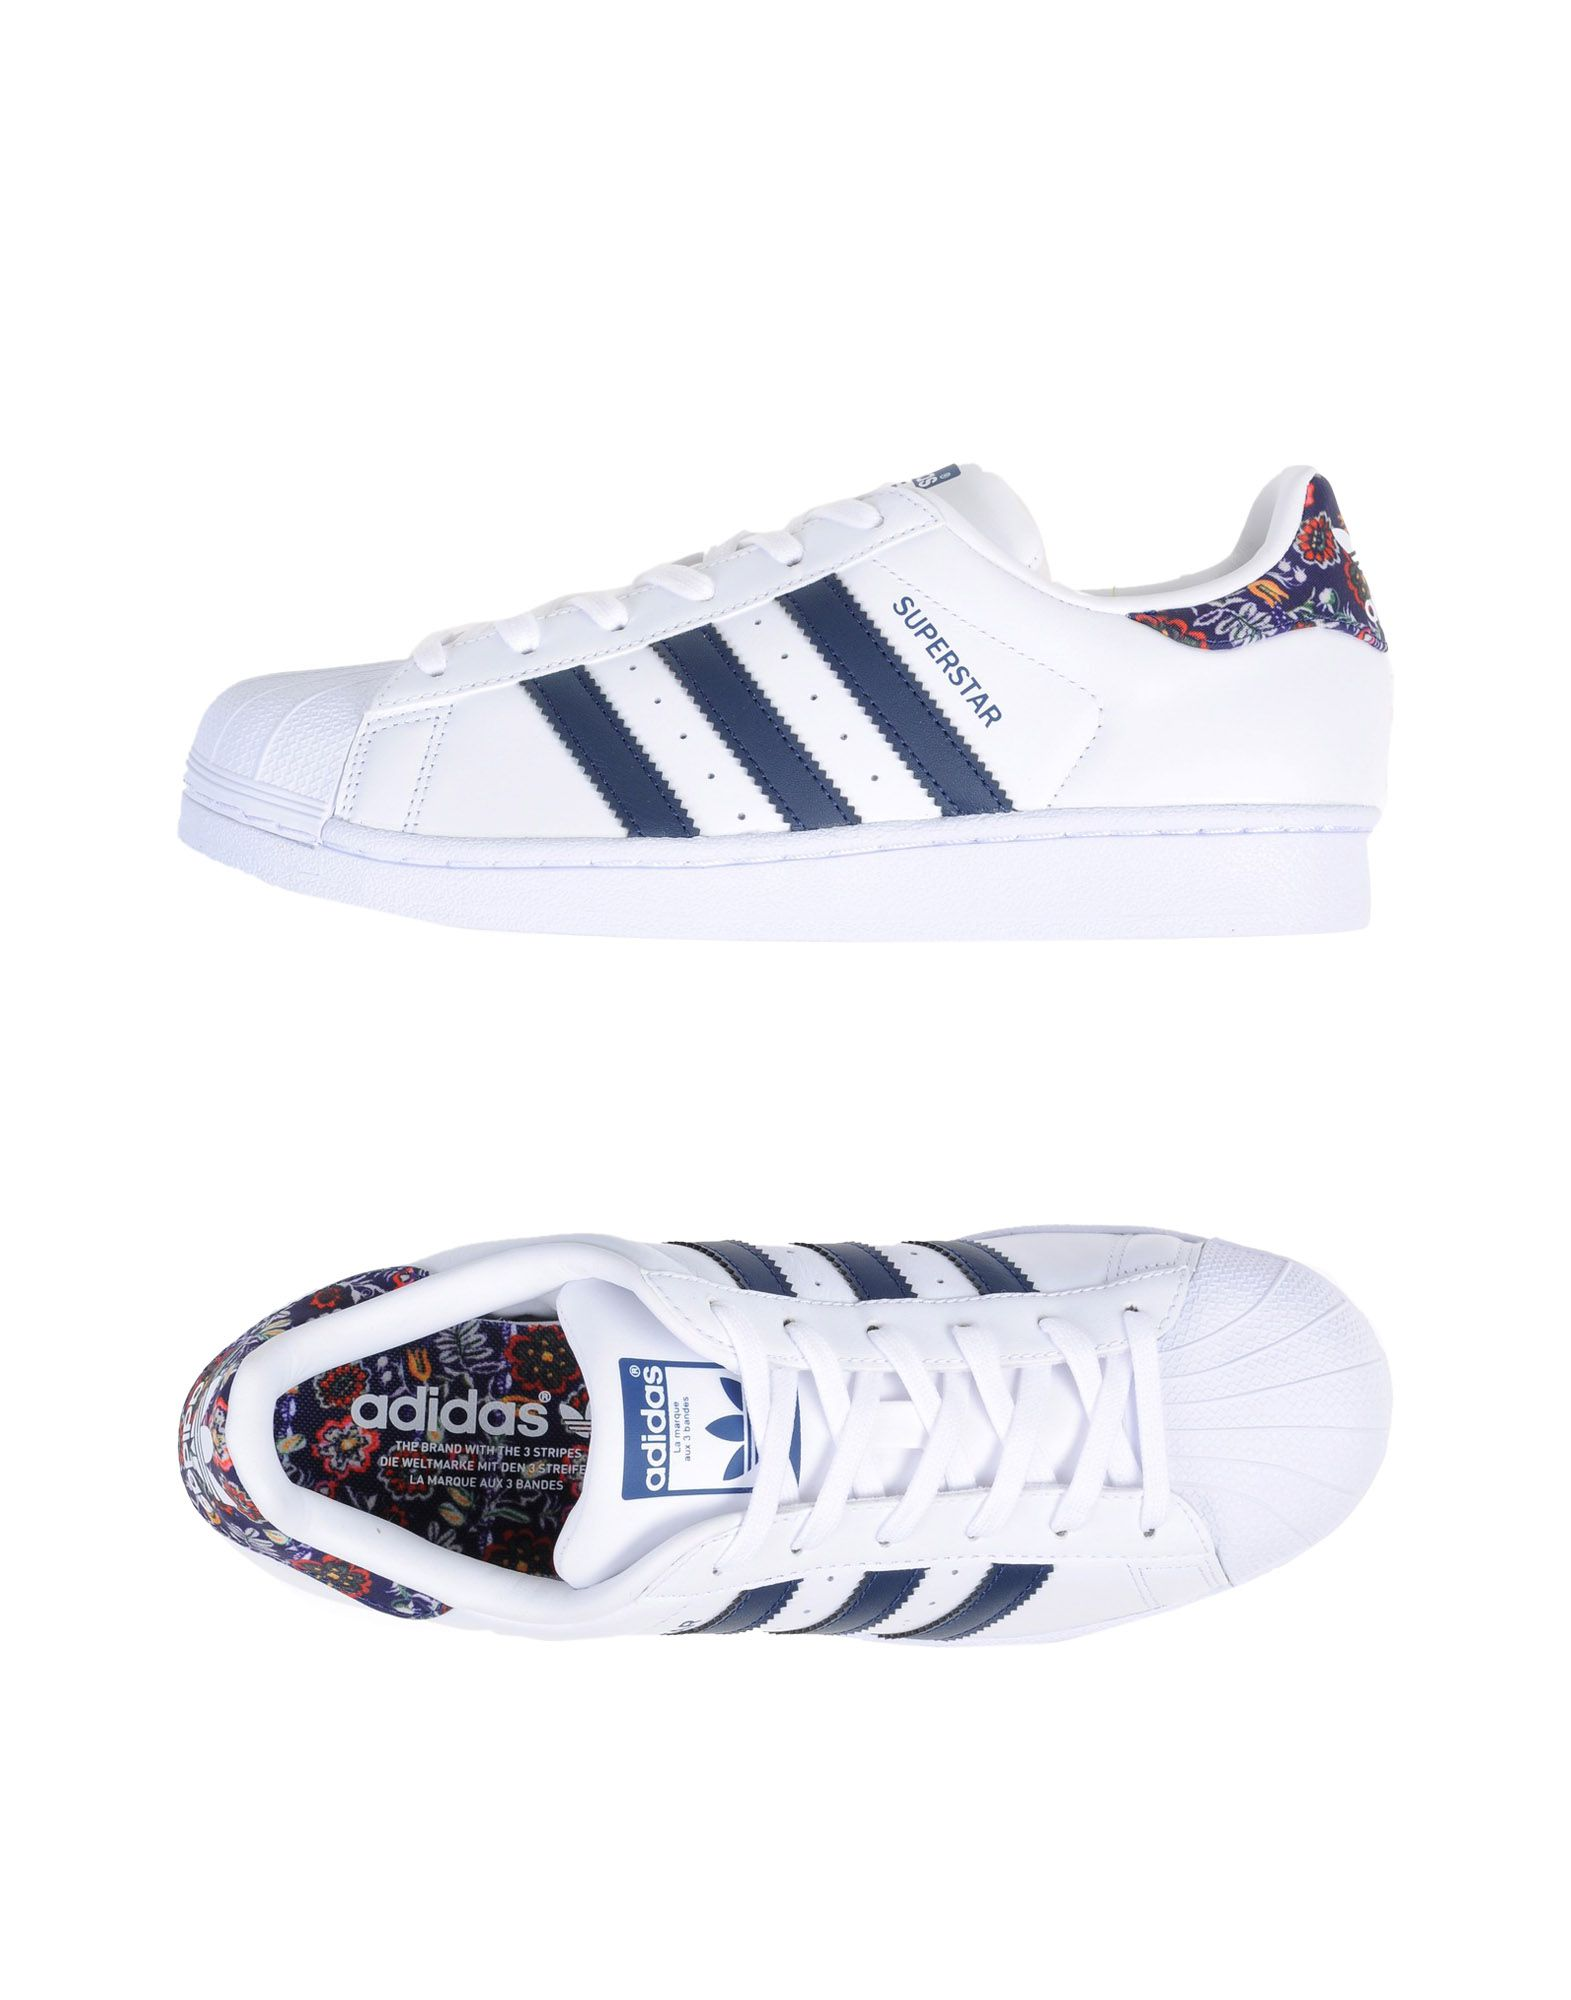 adidas superstar pas cher chine allow project.eu